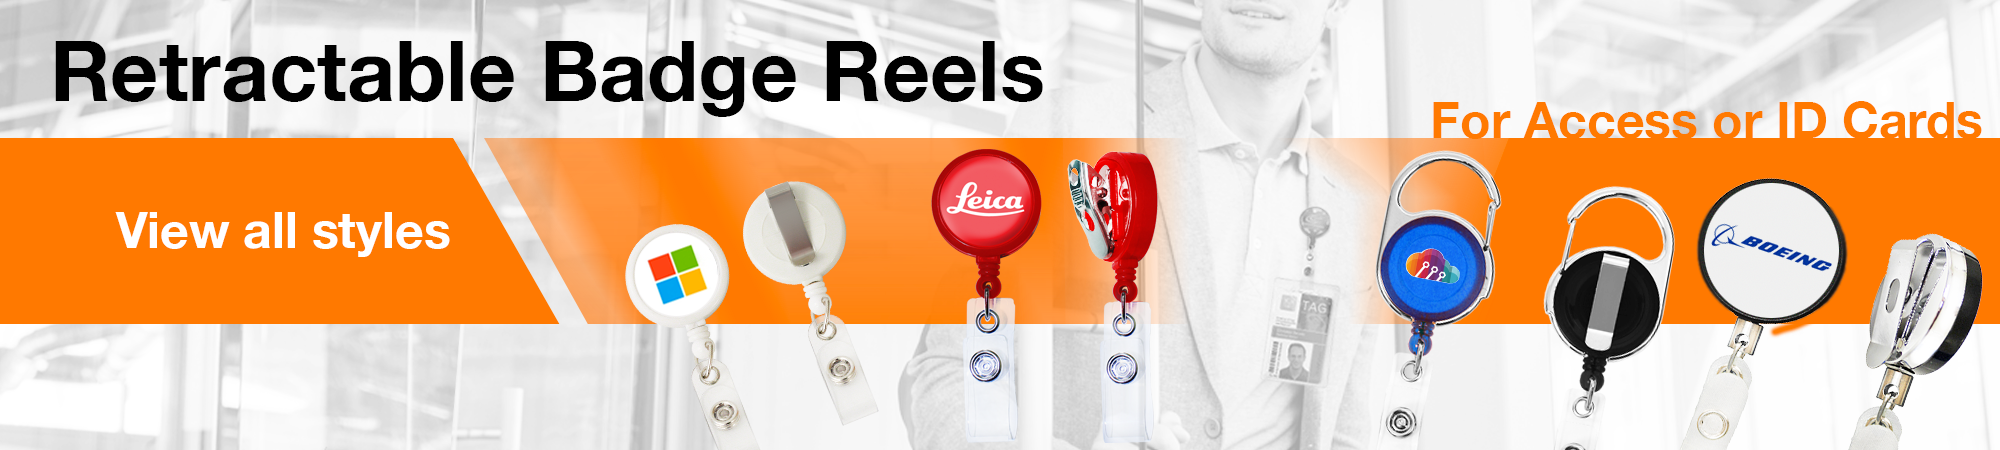 Retractable Reels